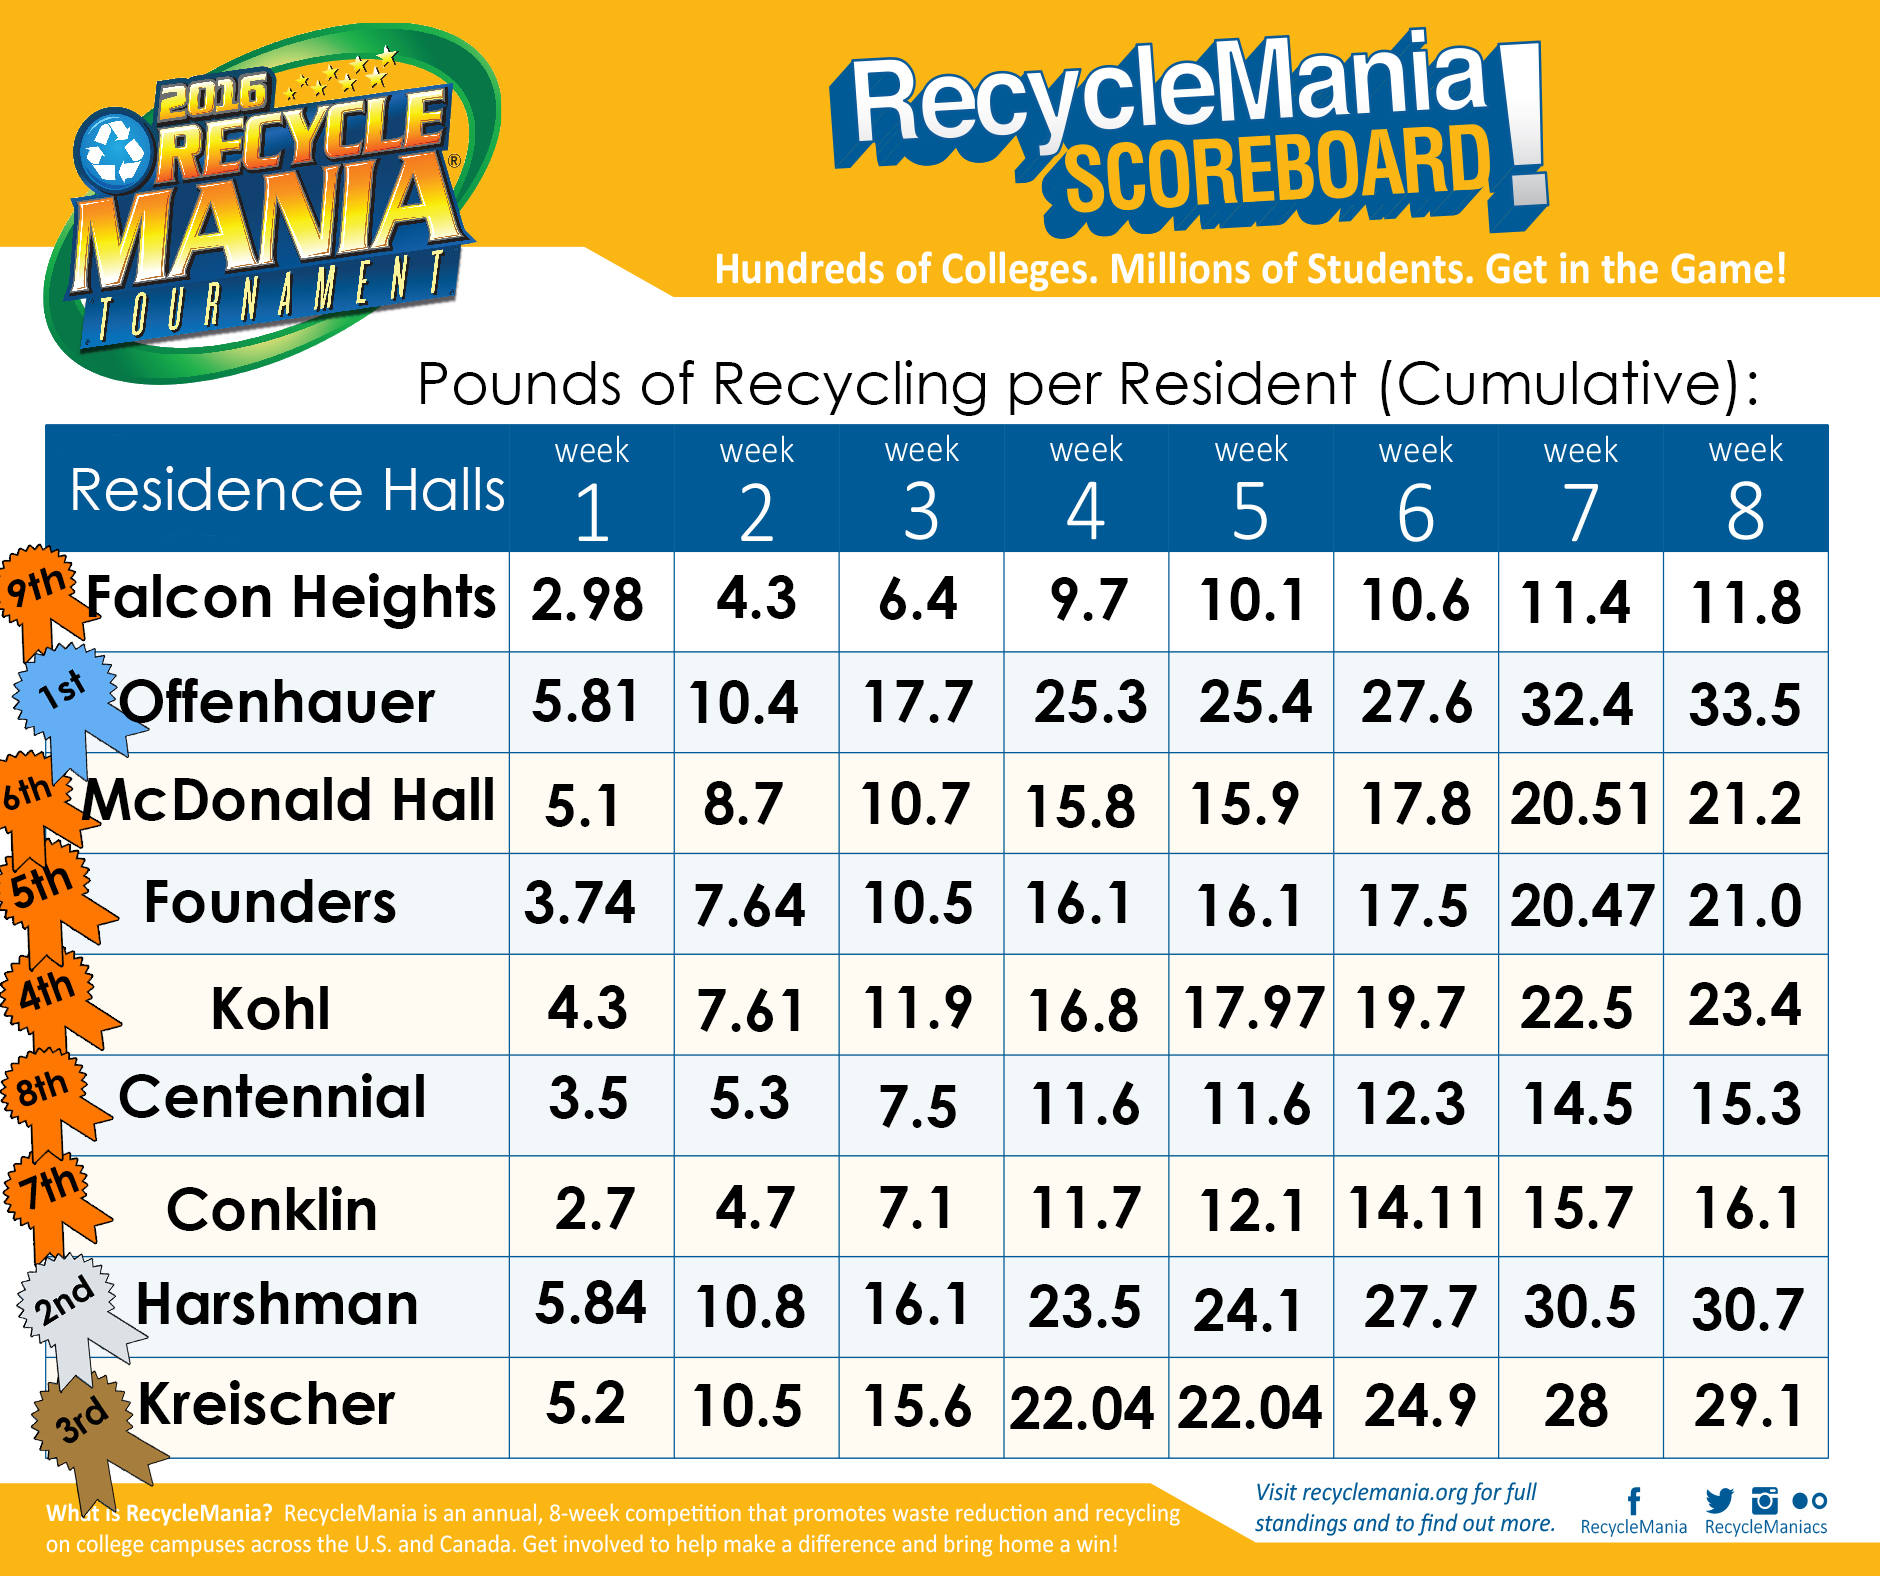 OFFENHAUER WINS RECYCLEMANIA 2016 COMPETITION!